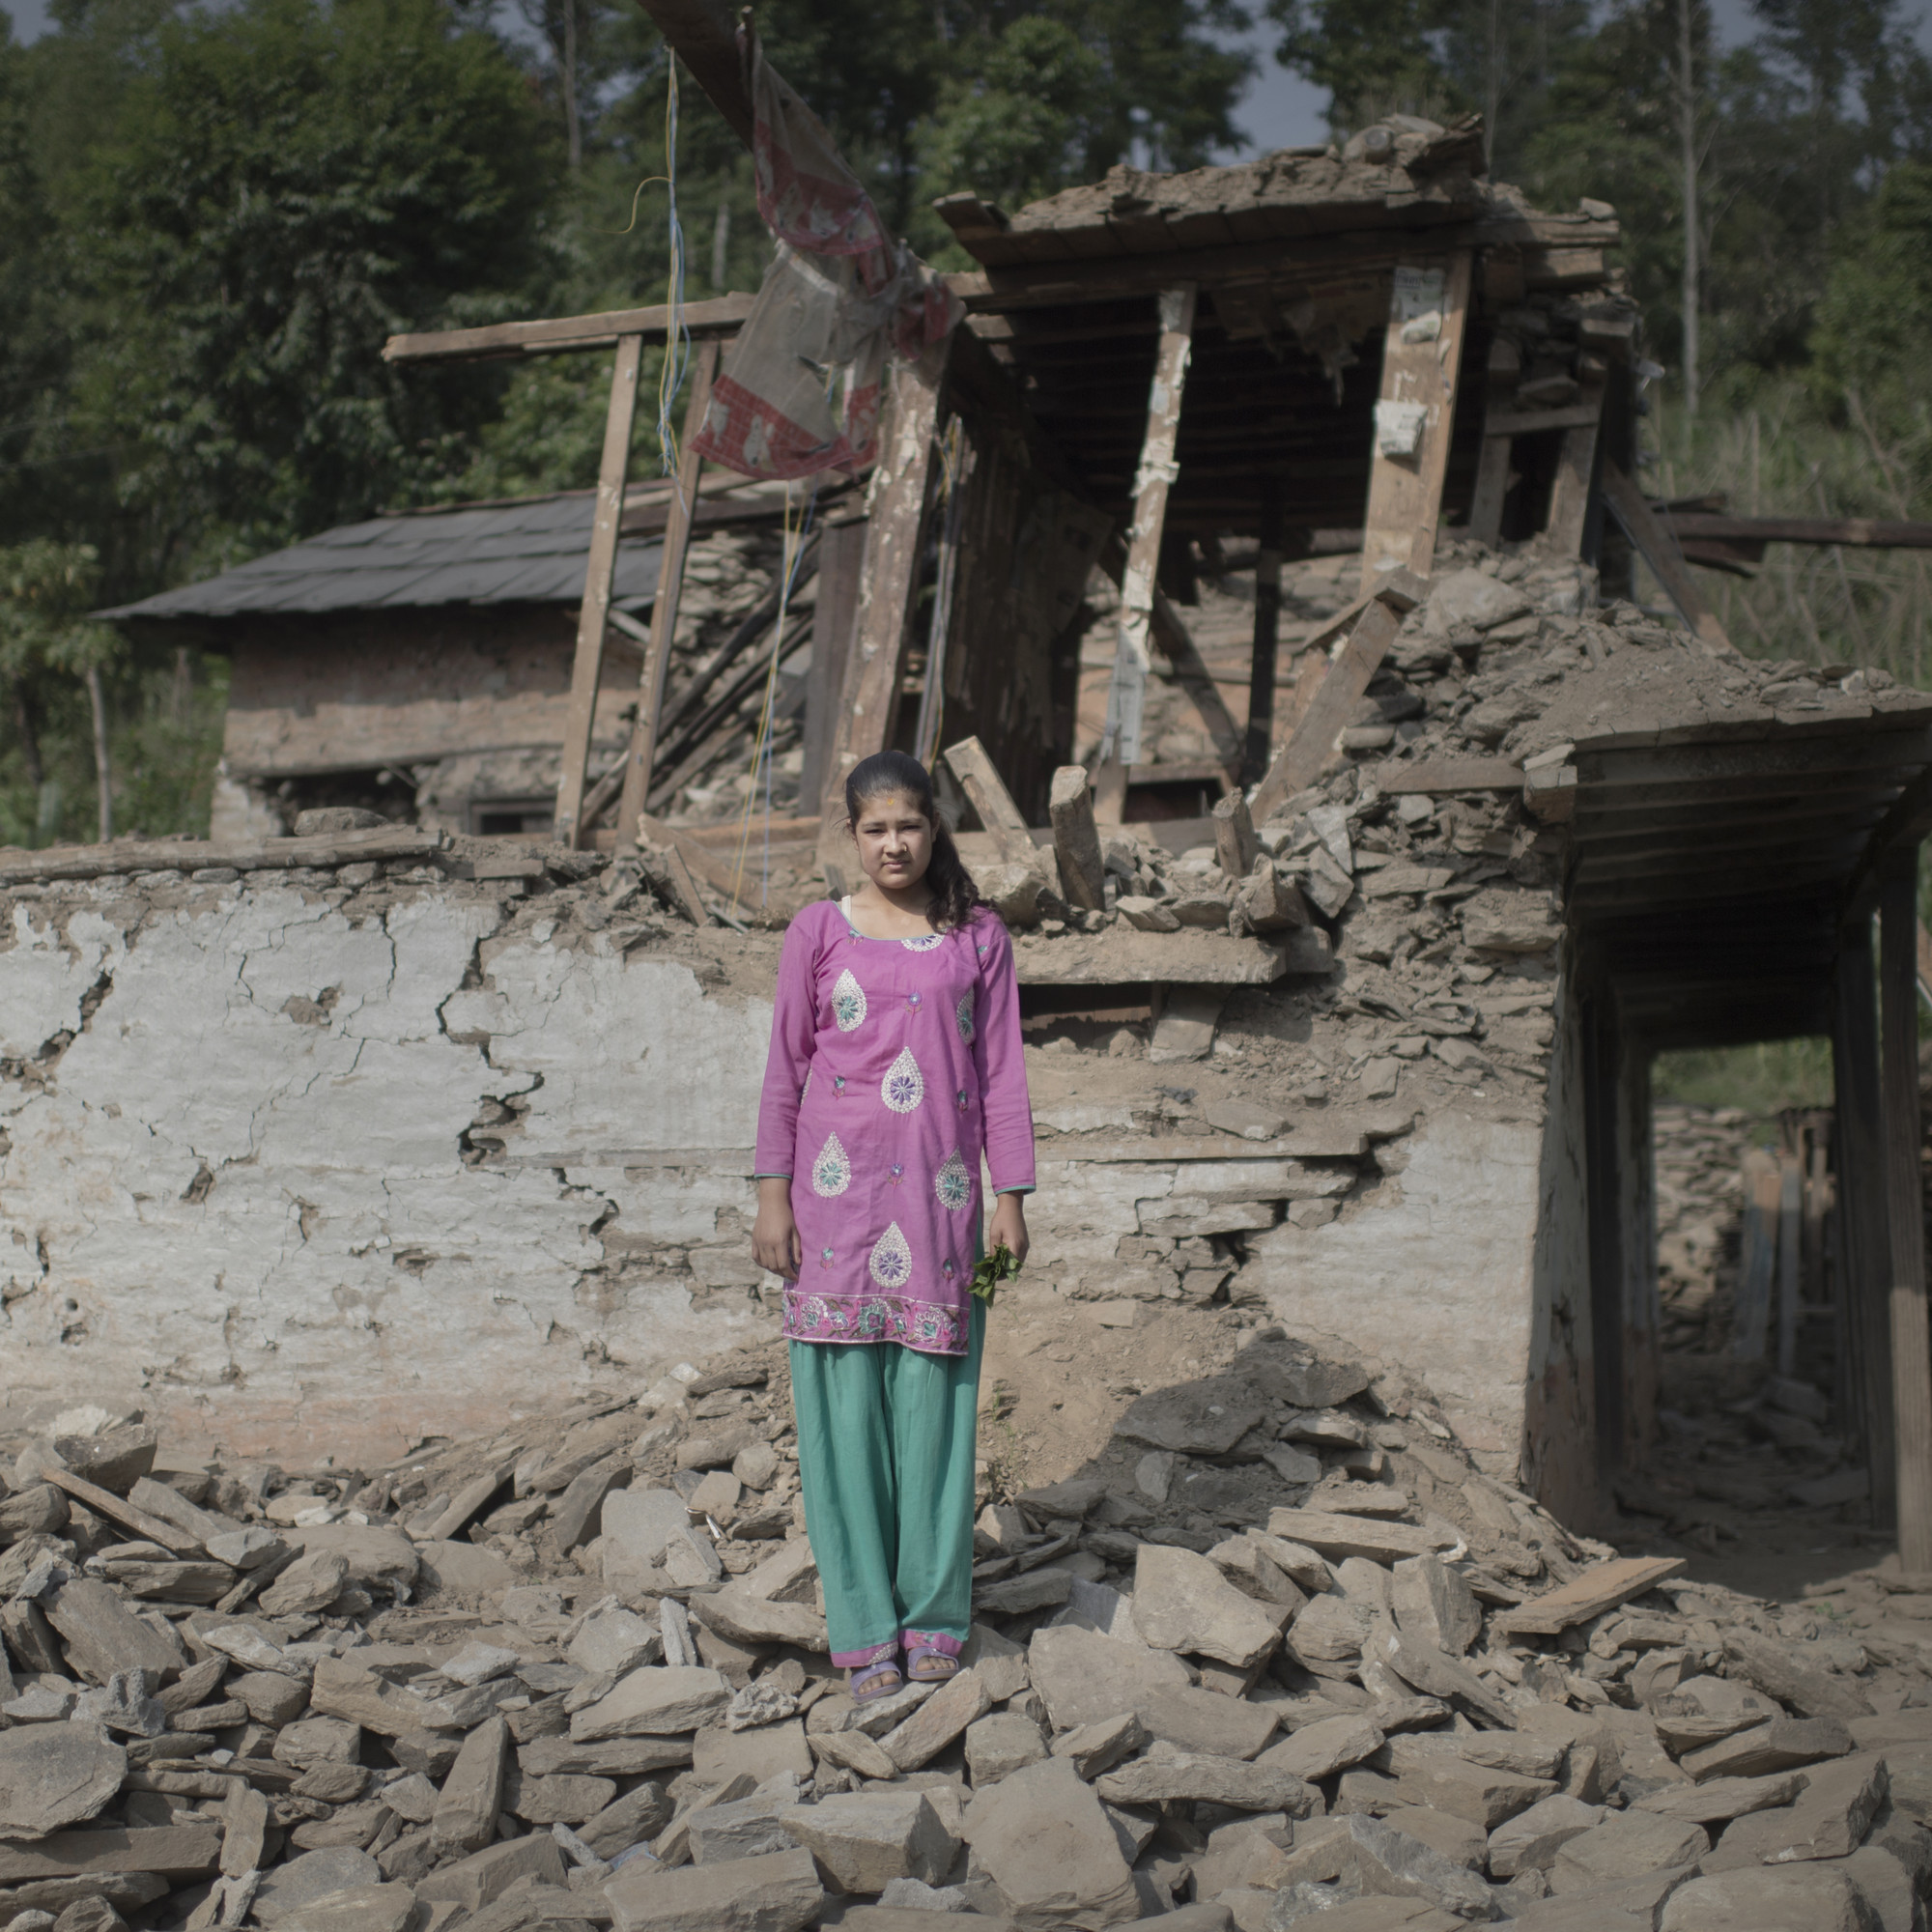 Namuna stands among rubble after the Nepal earthquakes